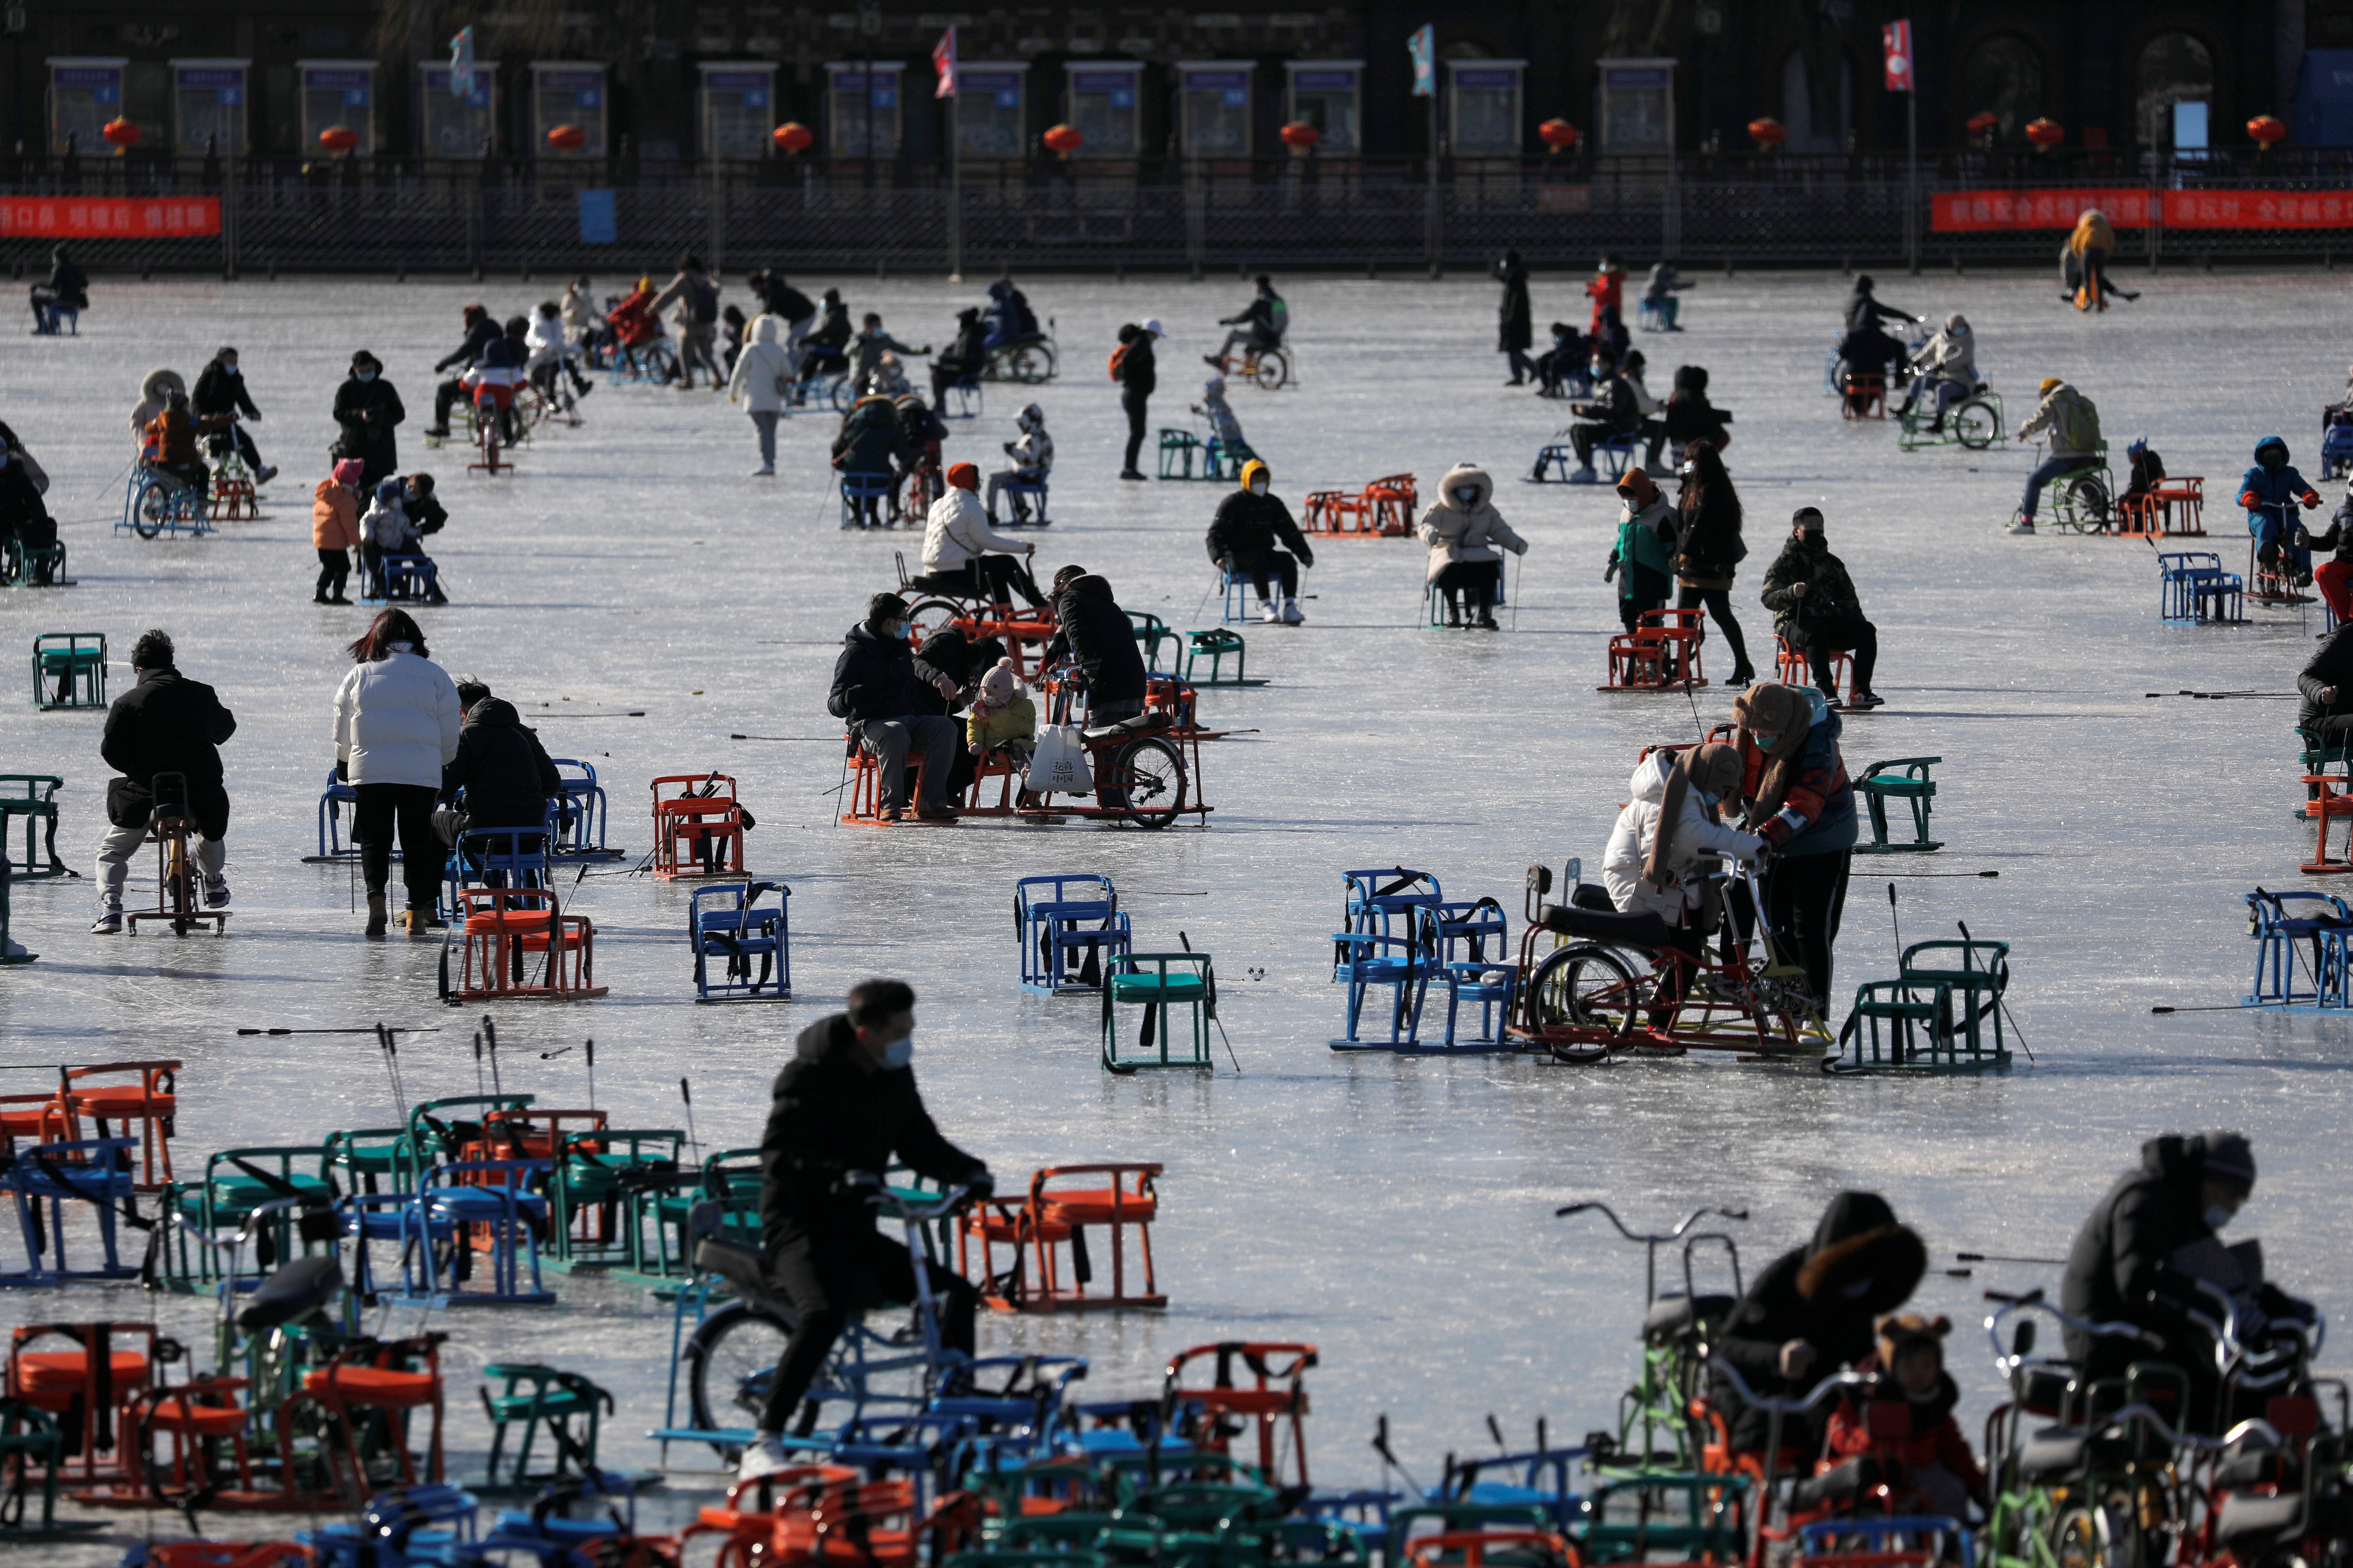 People wearing face masks following the coronavirus disease (COVID-19) outbreak skate on a frozen lake which has been turned to an ice rink, in Beijing, China, January 16, 2021. Picture taken January 16, 2021. REUTERS/Tingshu Wang